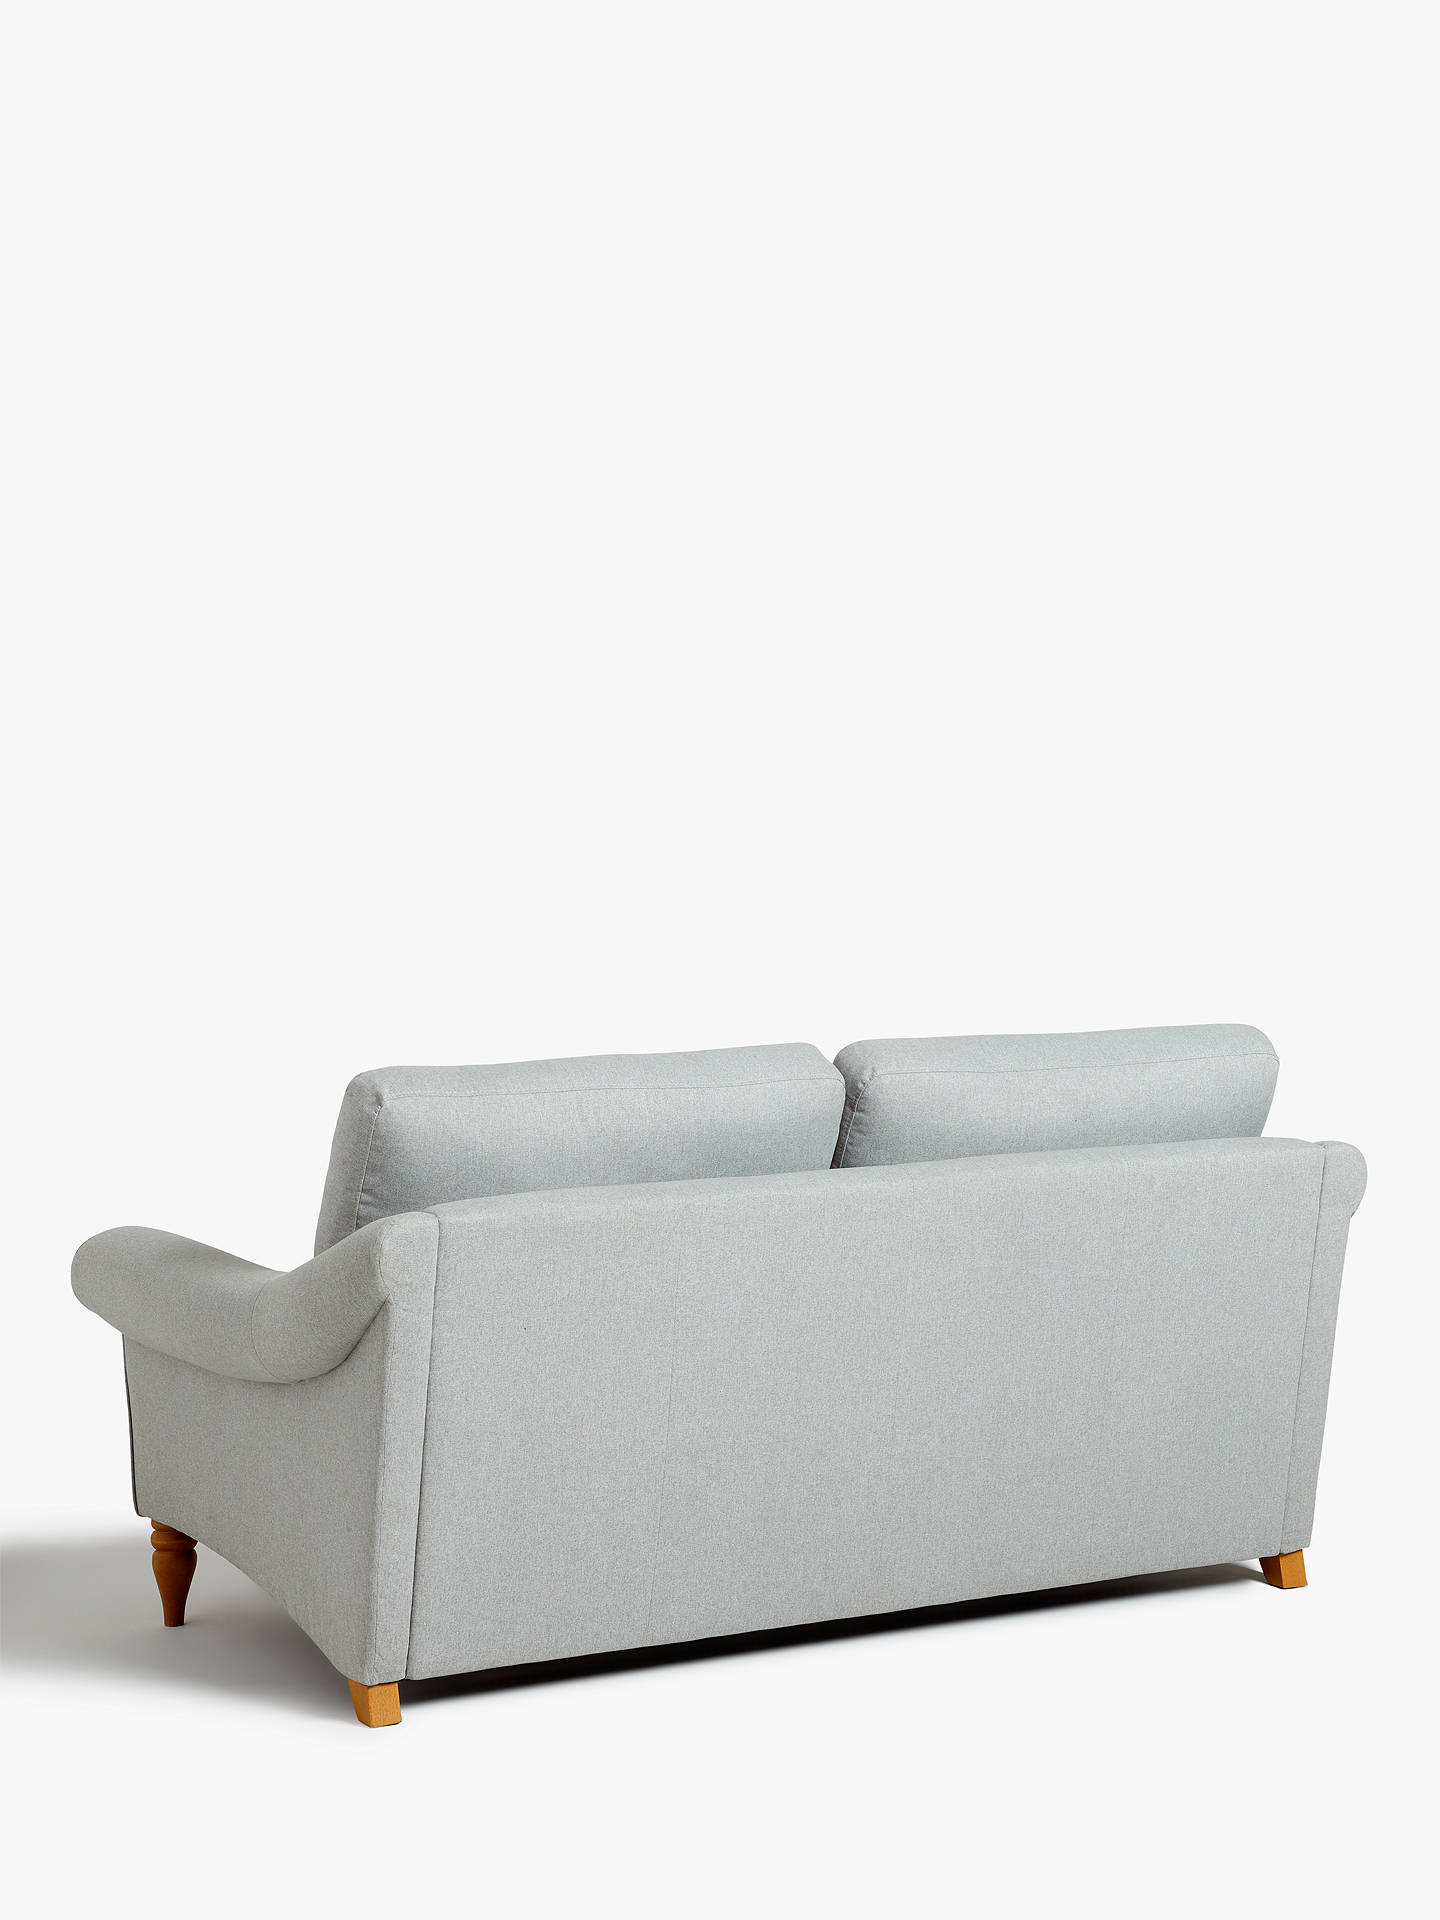 Buy John Lewis & Partners Camber Large 3 Seater Sofa, Light Leg, Aquaclean Matilda Duck Egg Online at johnlewis.com